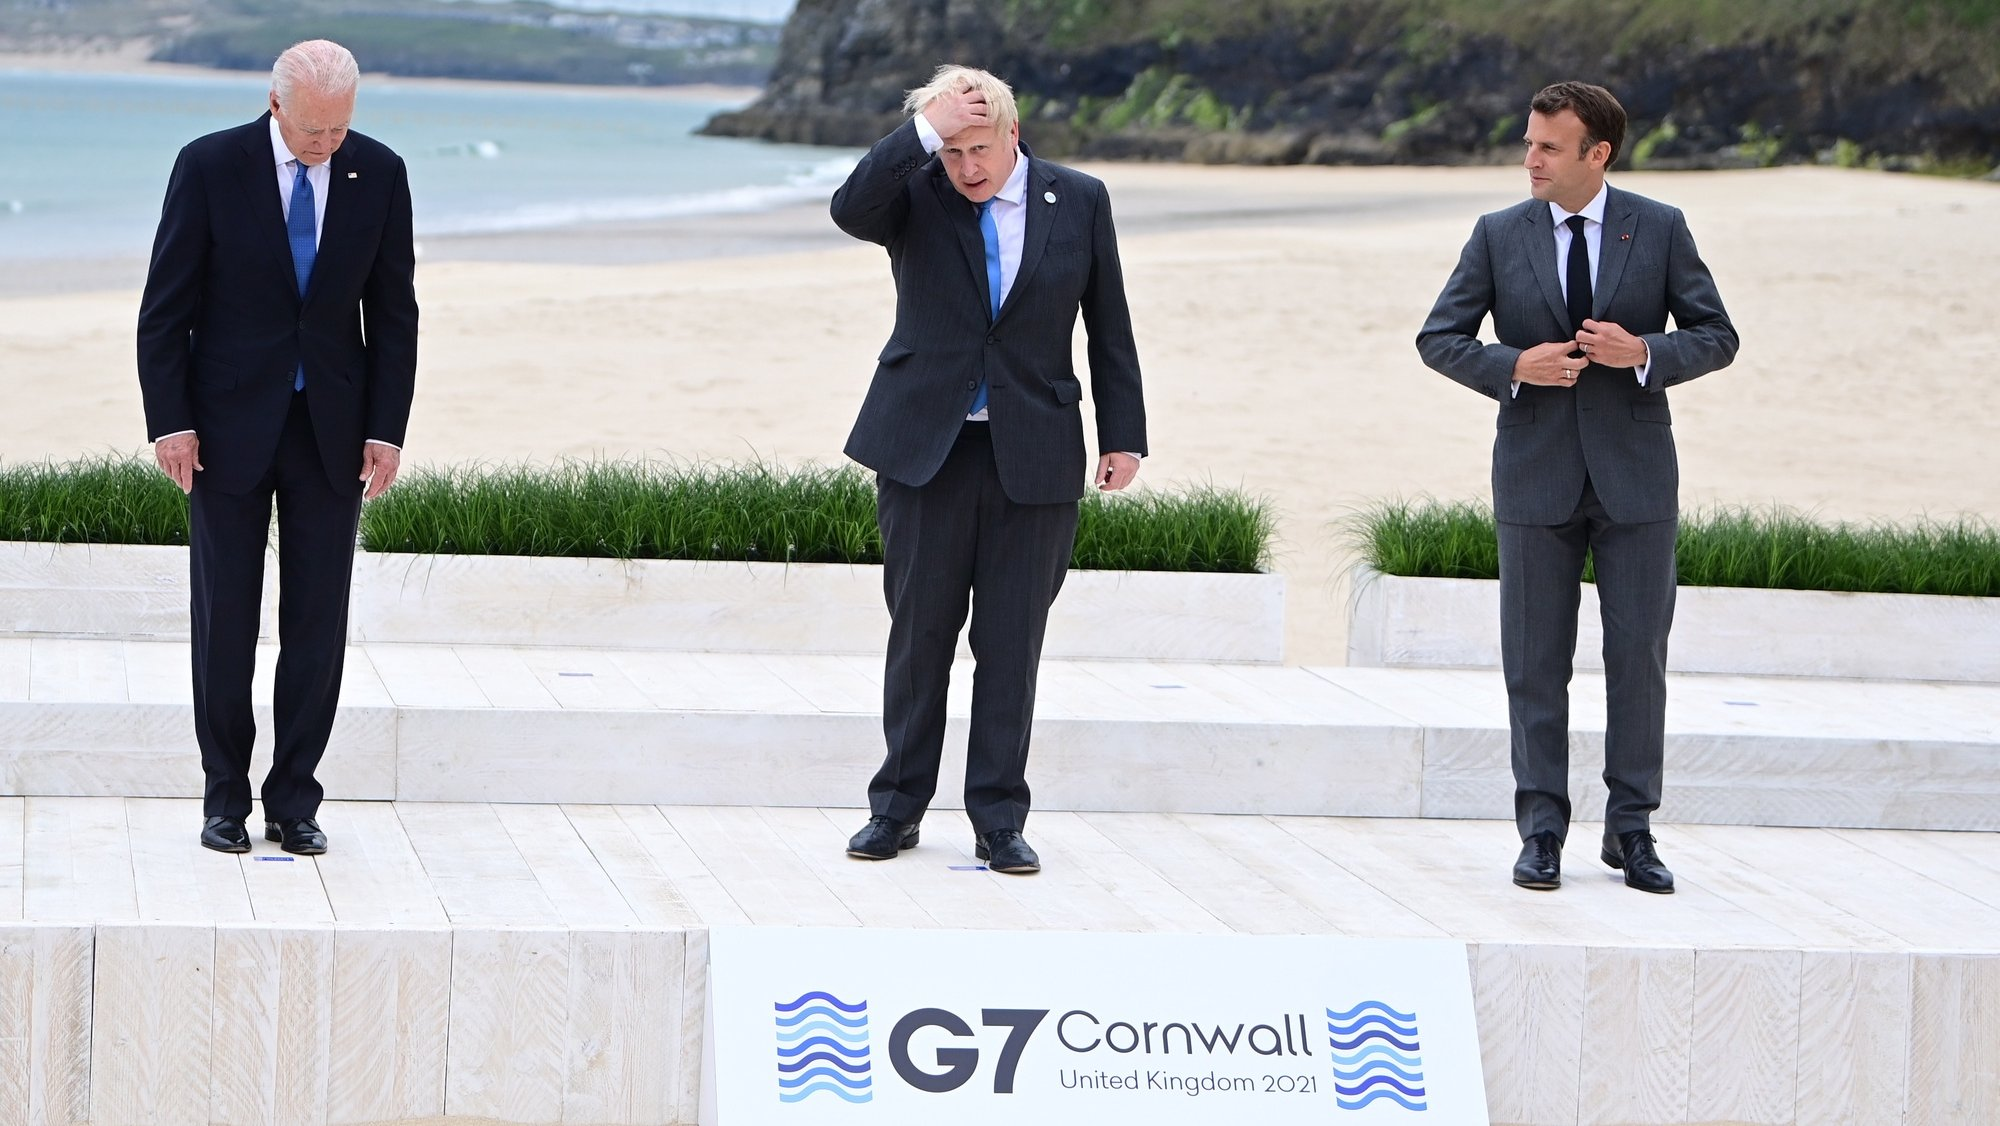 epa09262174 US President Joe Biden (L) Britain's Prime Minister Boris Johnson (C) and France's President Emanuel Macron (R) pose for the family photo during the G7 Summit in Carbis Bay, Britain, 11 June 2021. Britain will held the G7 summit in Cornwall in from 11 to 13 June 2021.  EPA/NEIL HALL/INTERNATIONAL POOL